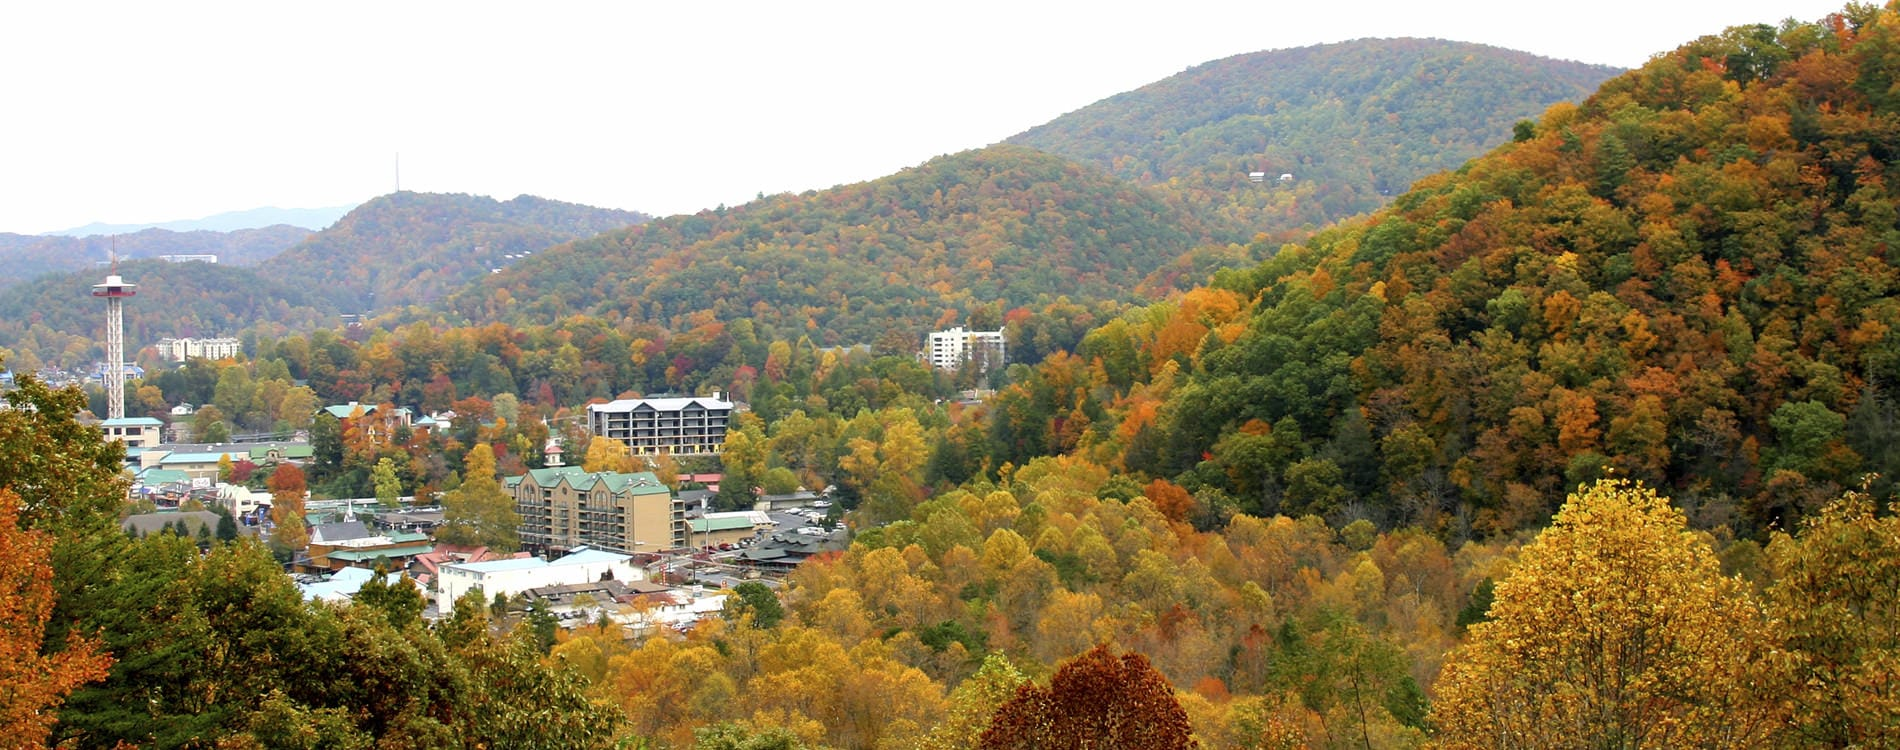 Fall in downtown Gatlinburg Tennessee